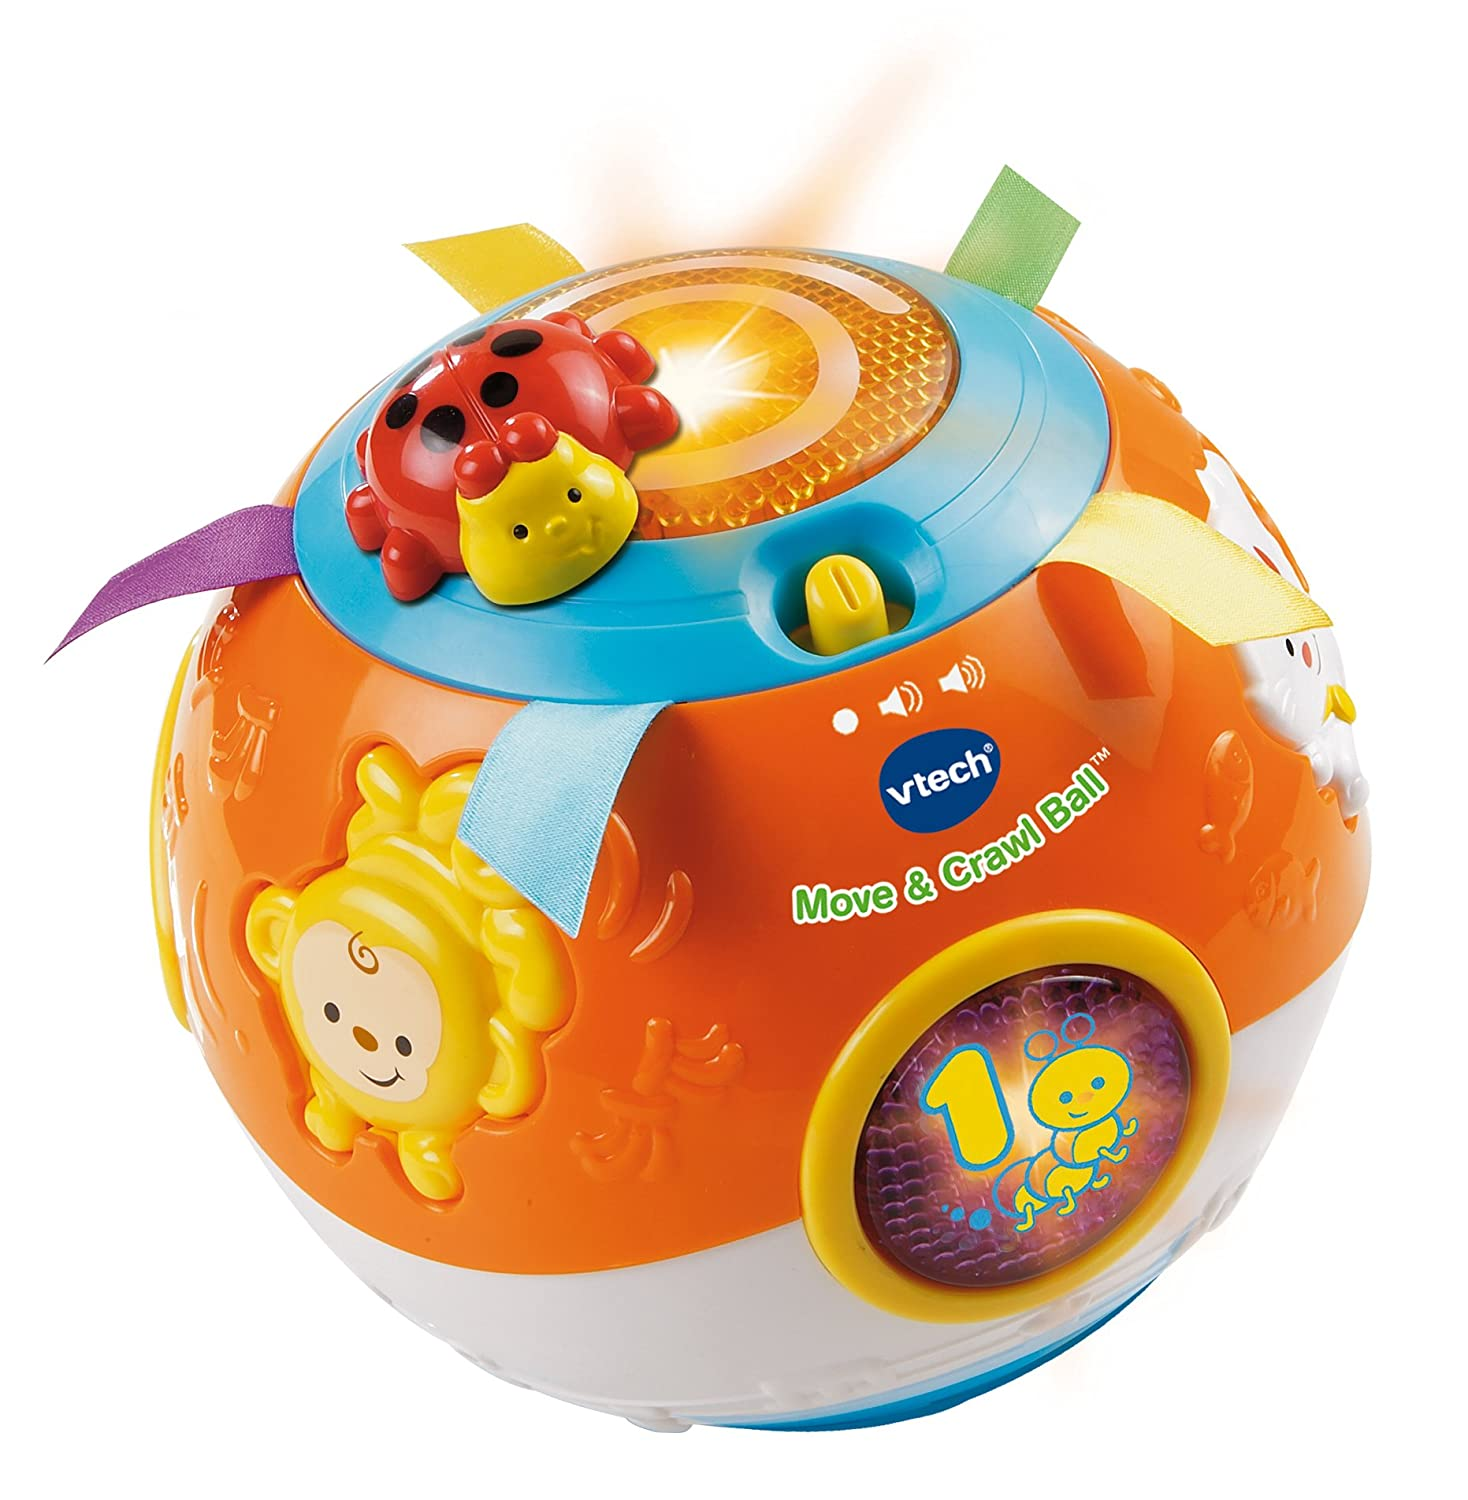 Vtech Move Crawl Ball Toys Electronic Learning Baby Kids